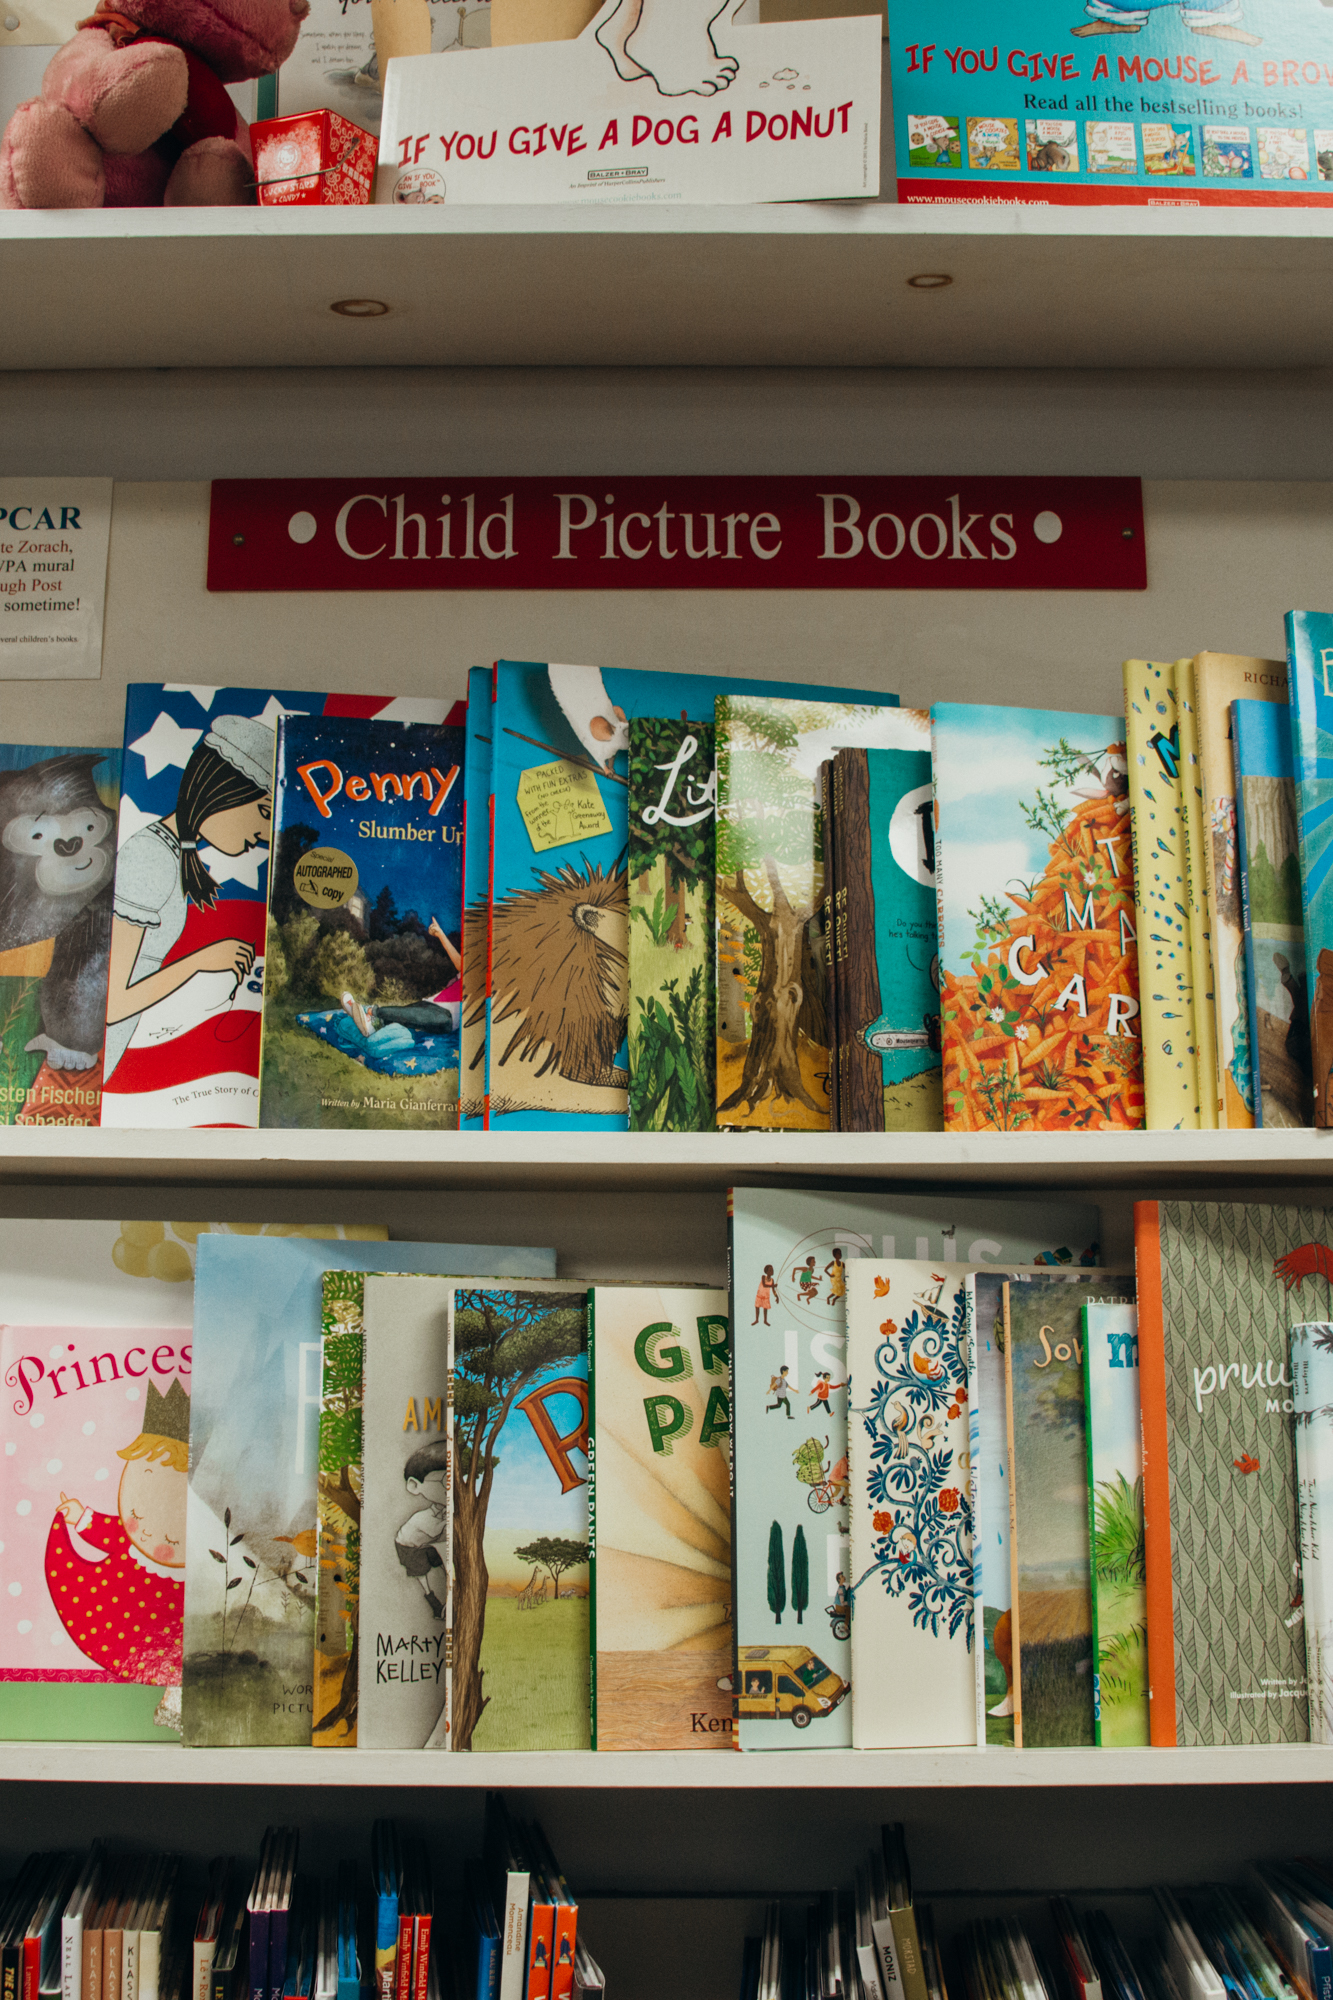 Selection of children's books in the Toadstool Bookstore, Peterborough, New Hampshire.